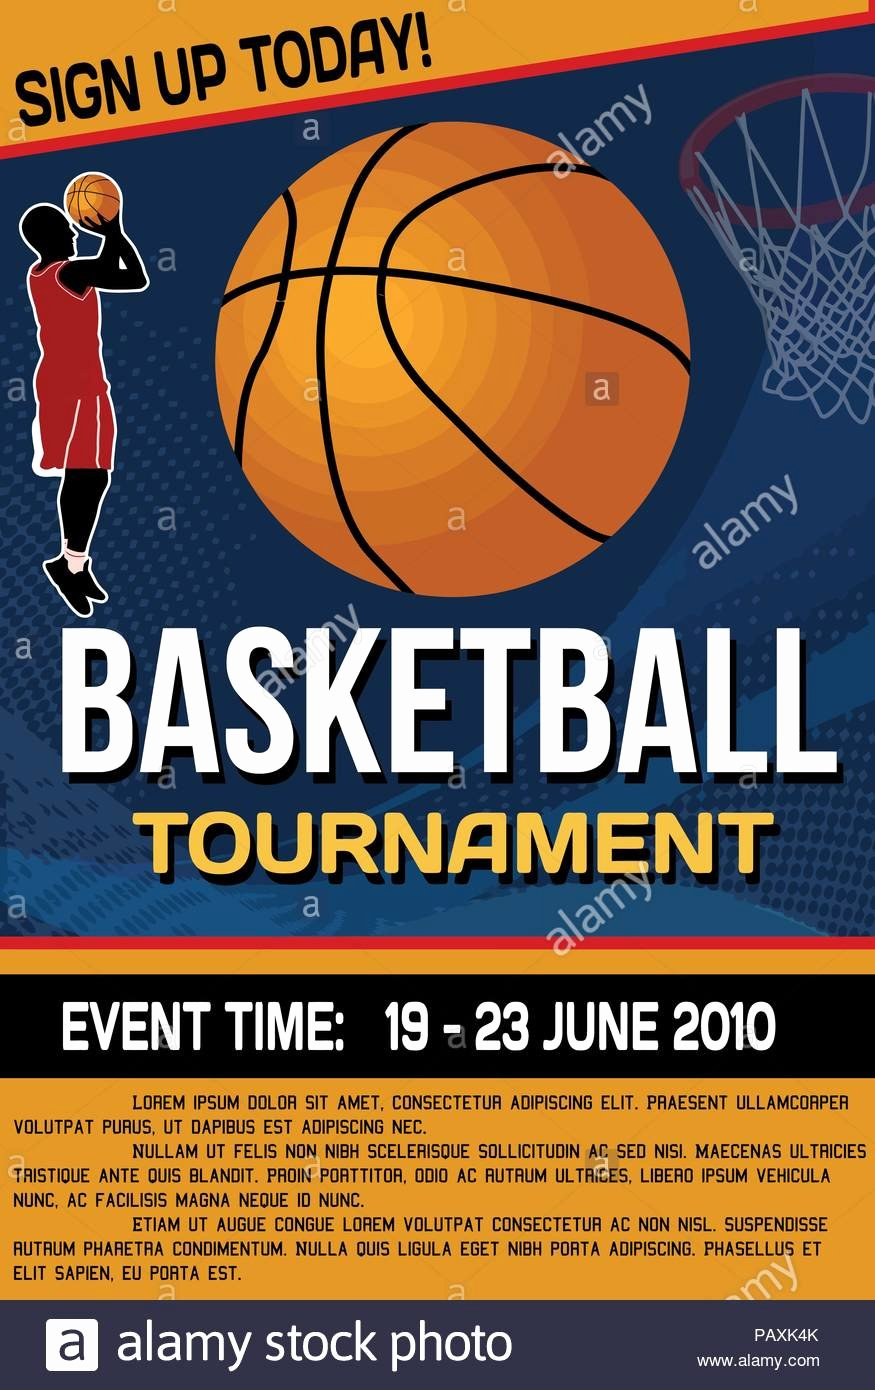 Basketball tournament Flyer Template Fresh Basketball tournament Flyer or Poster Background Vector Illustration Stock Vector Art